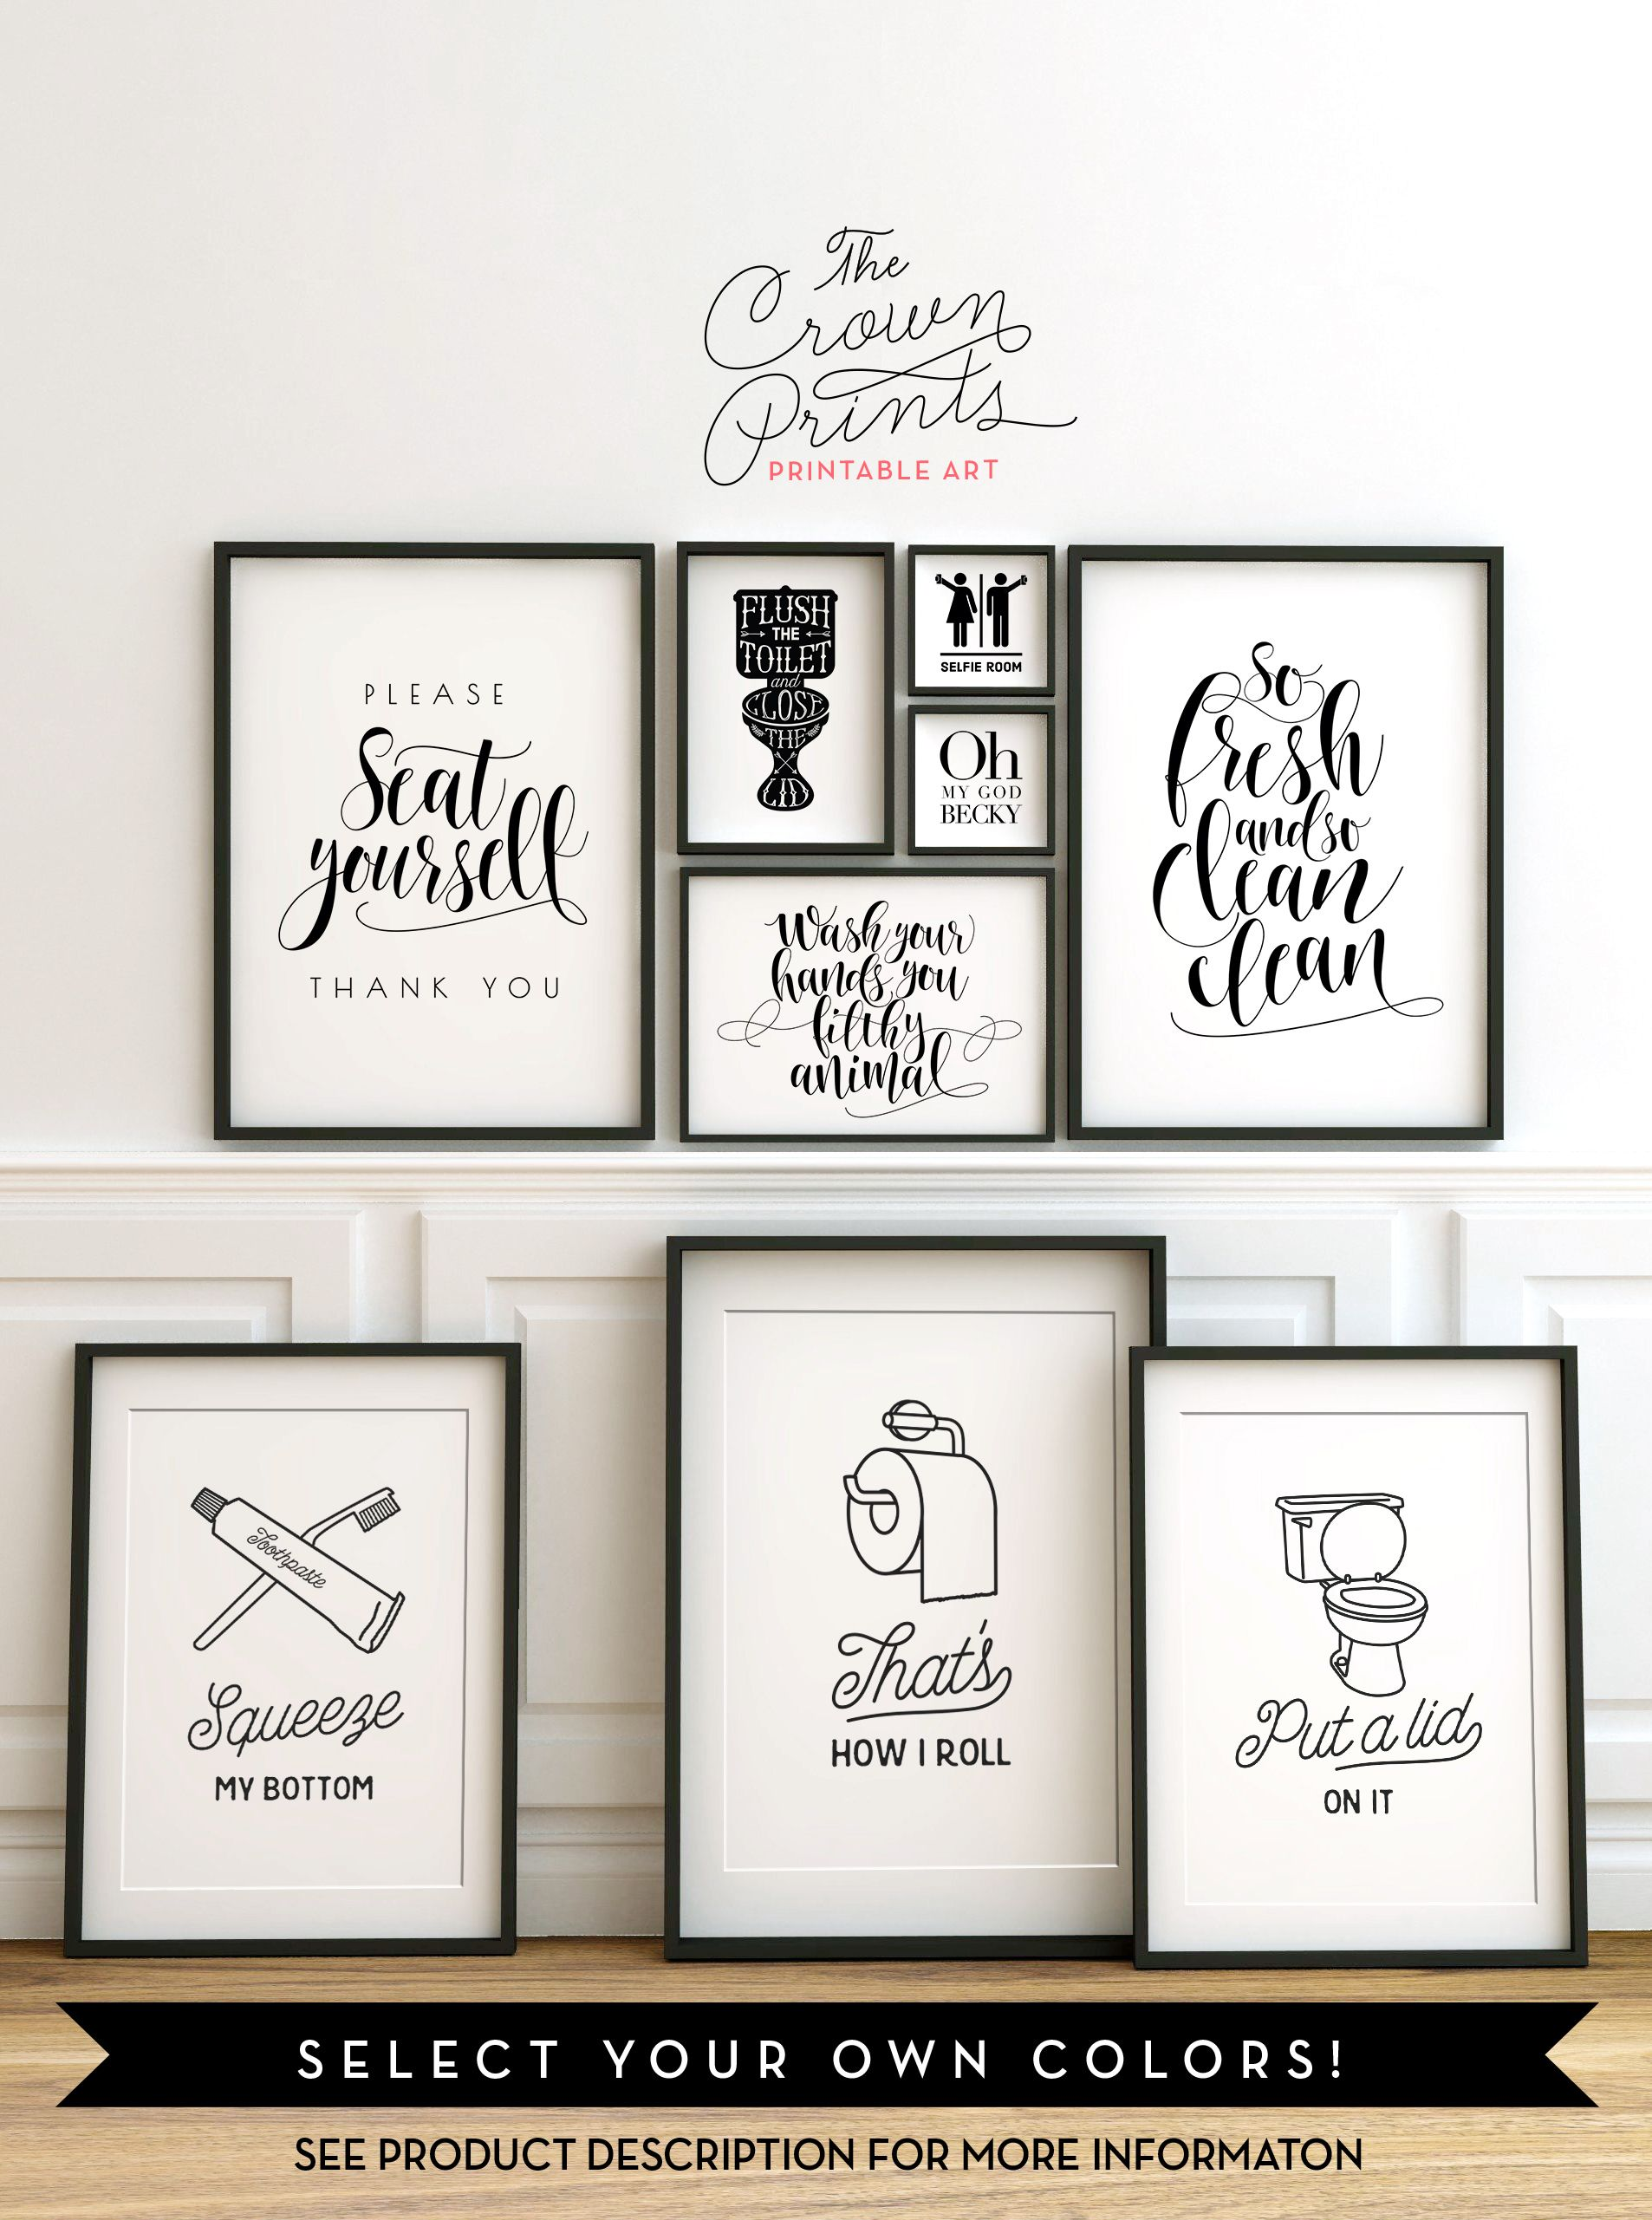 Printable bathroom wall art from the crown prints on etsy for Bathroom wall decor ideas